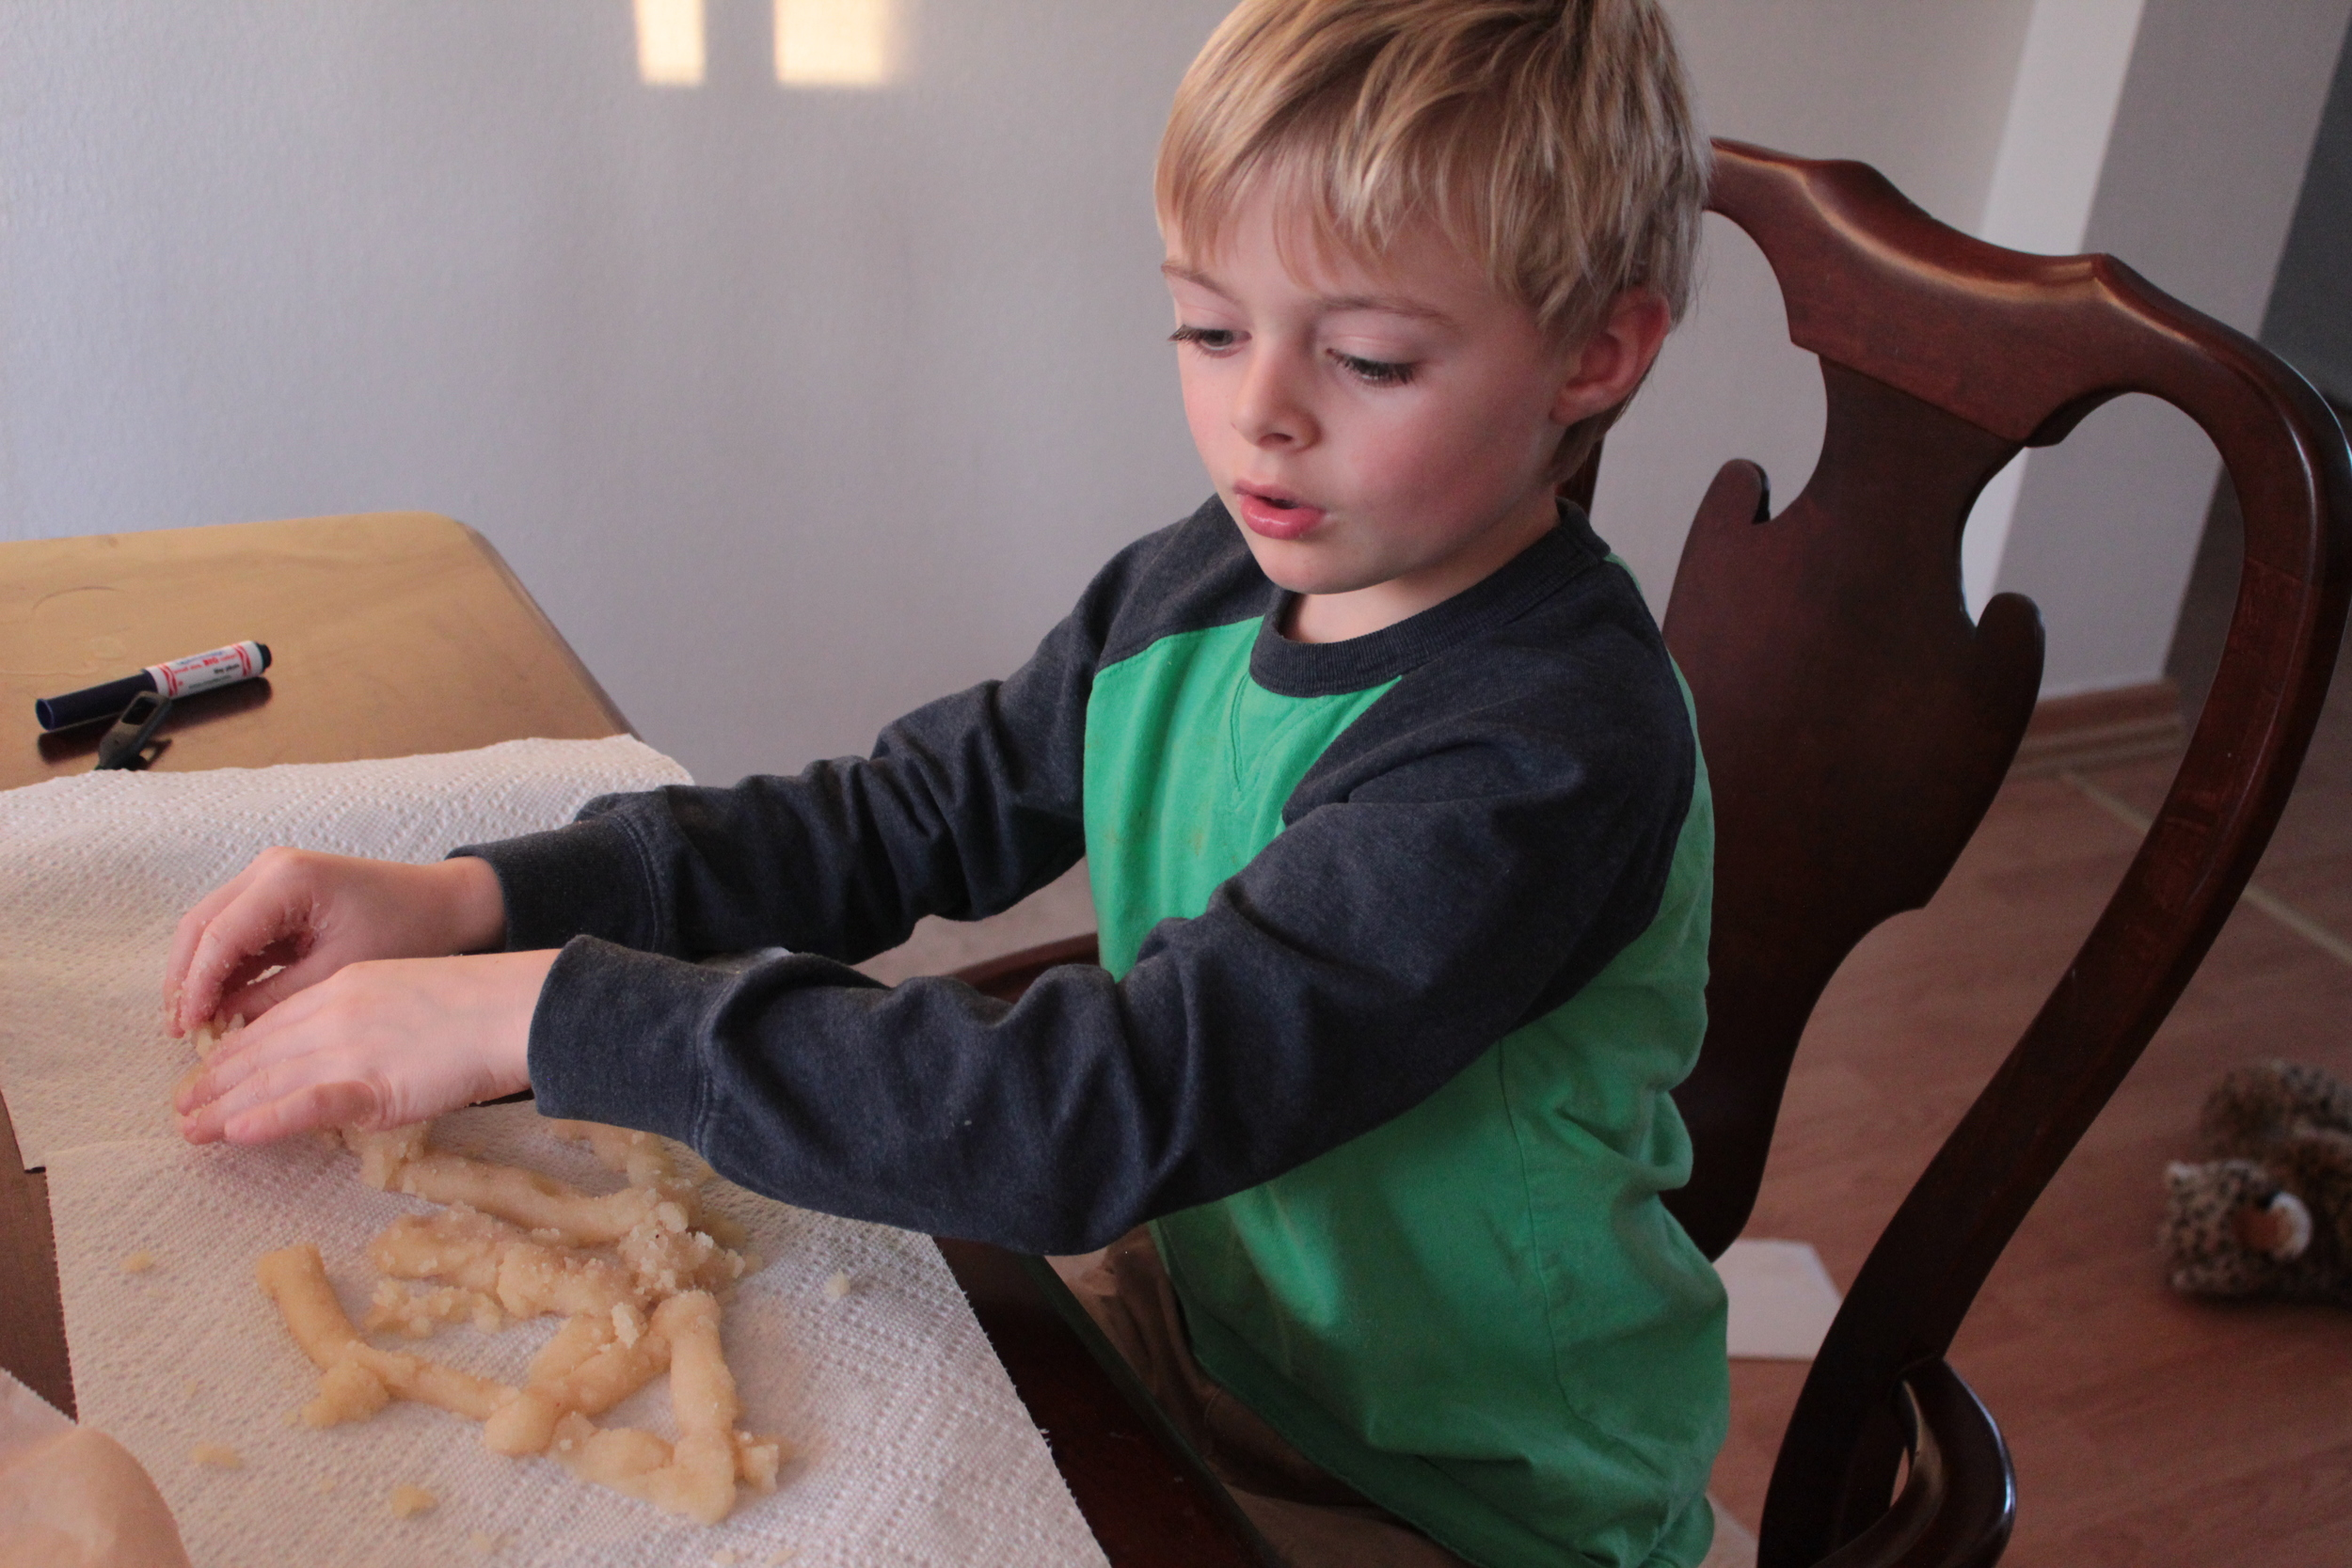 Shaping his marzipan into a hovercraft